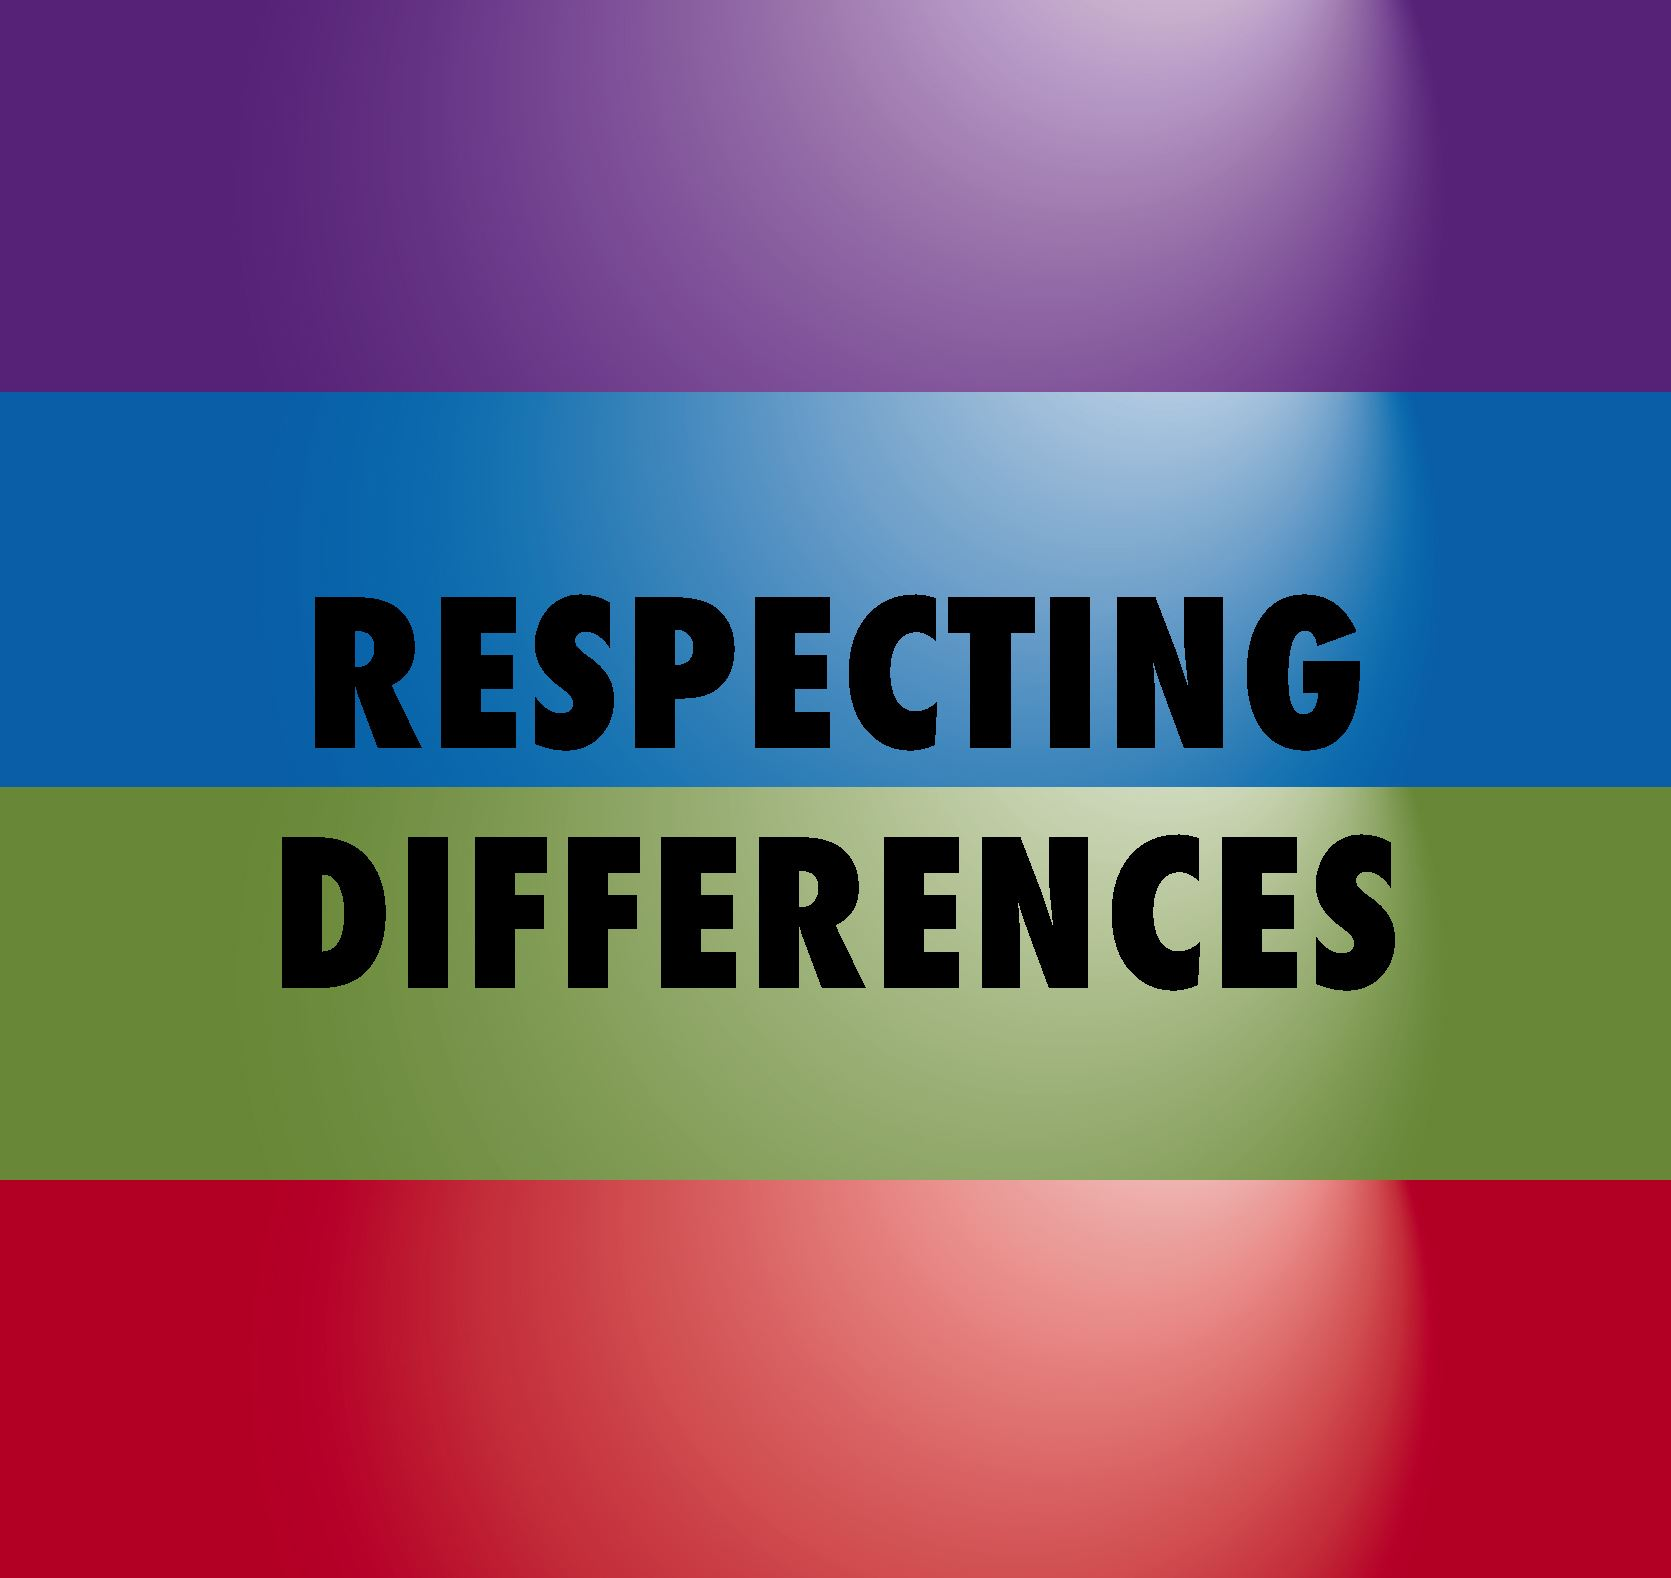 Respecting Differences 401 x 378